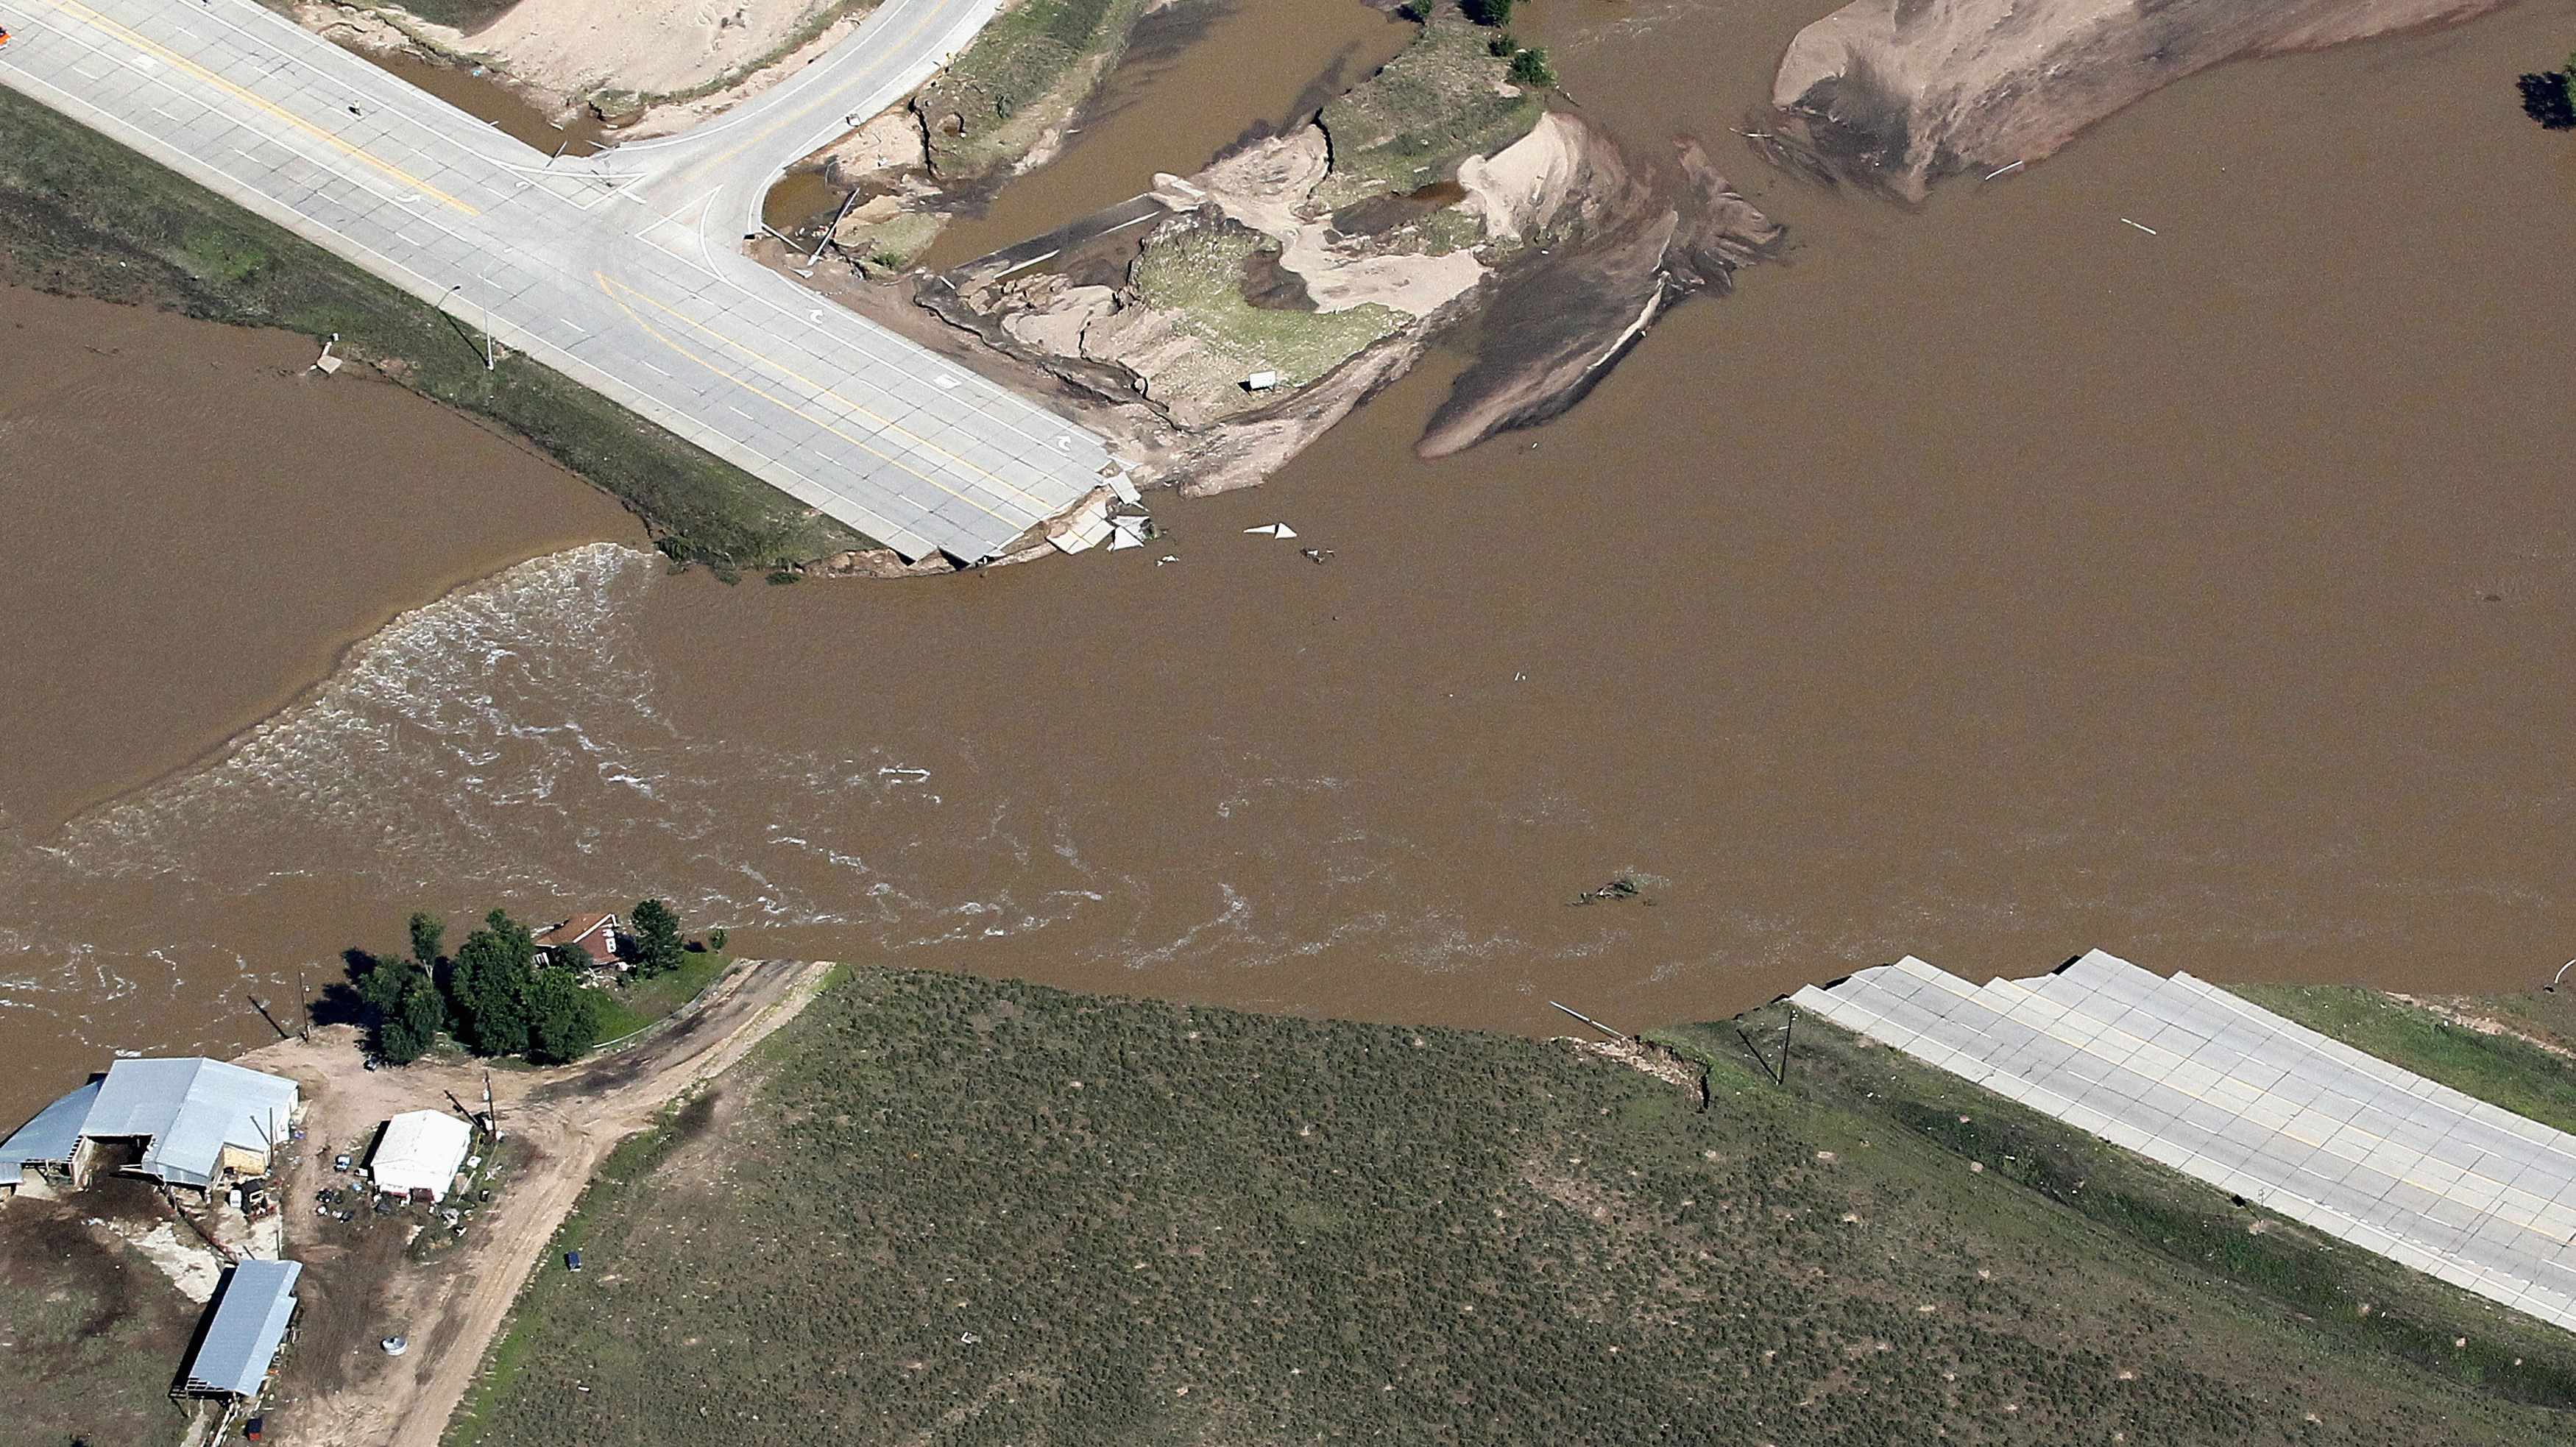 As Colorado Floodwaters Recede The Damage Becomes Clear